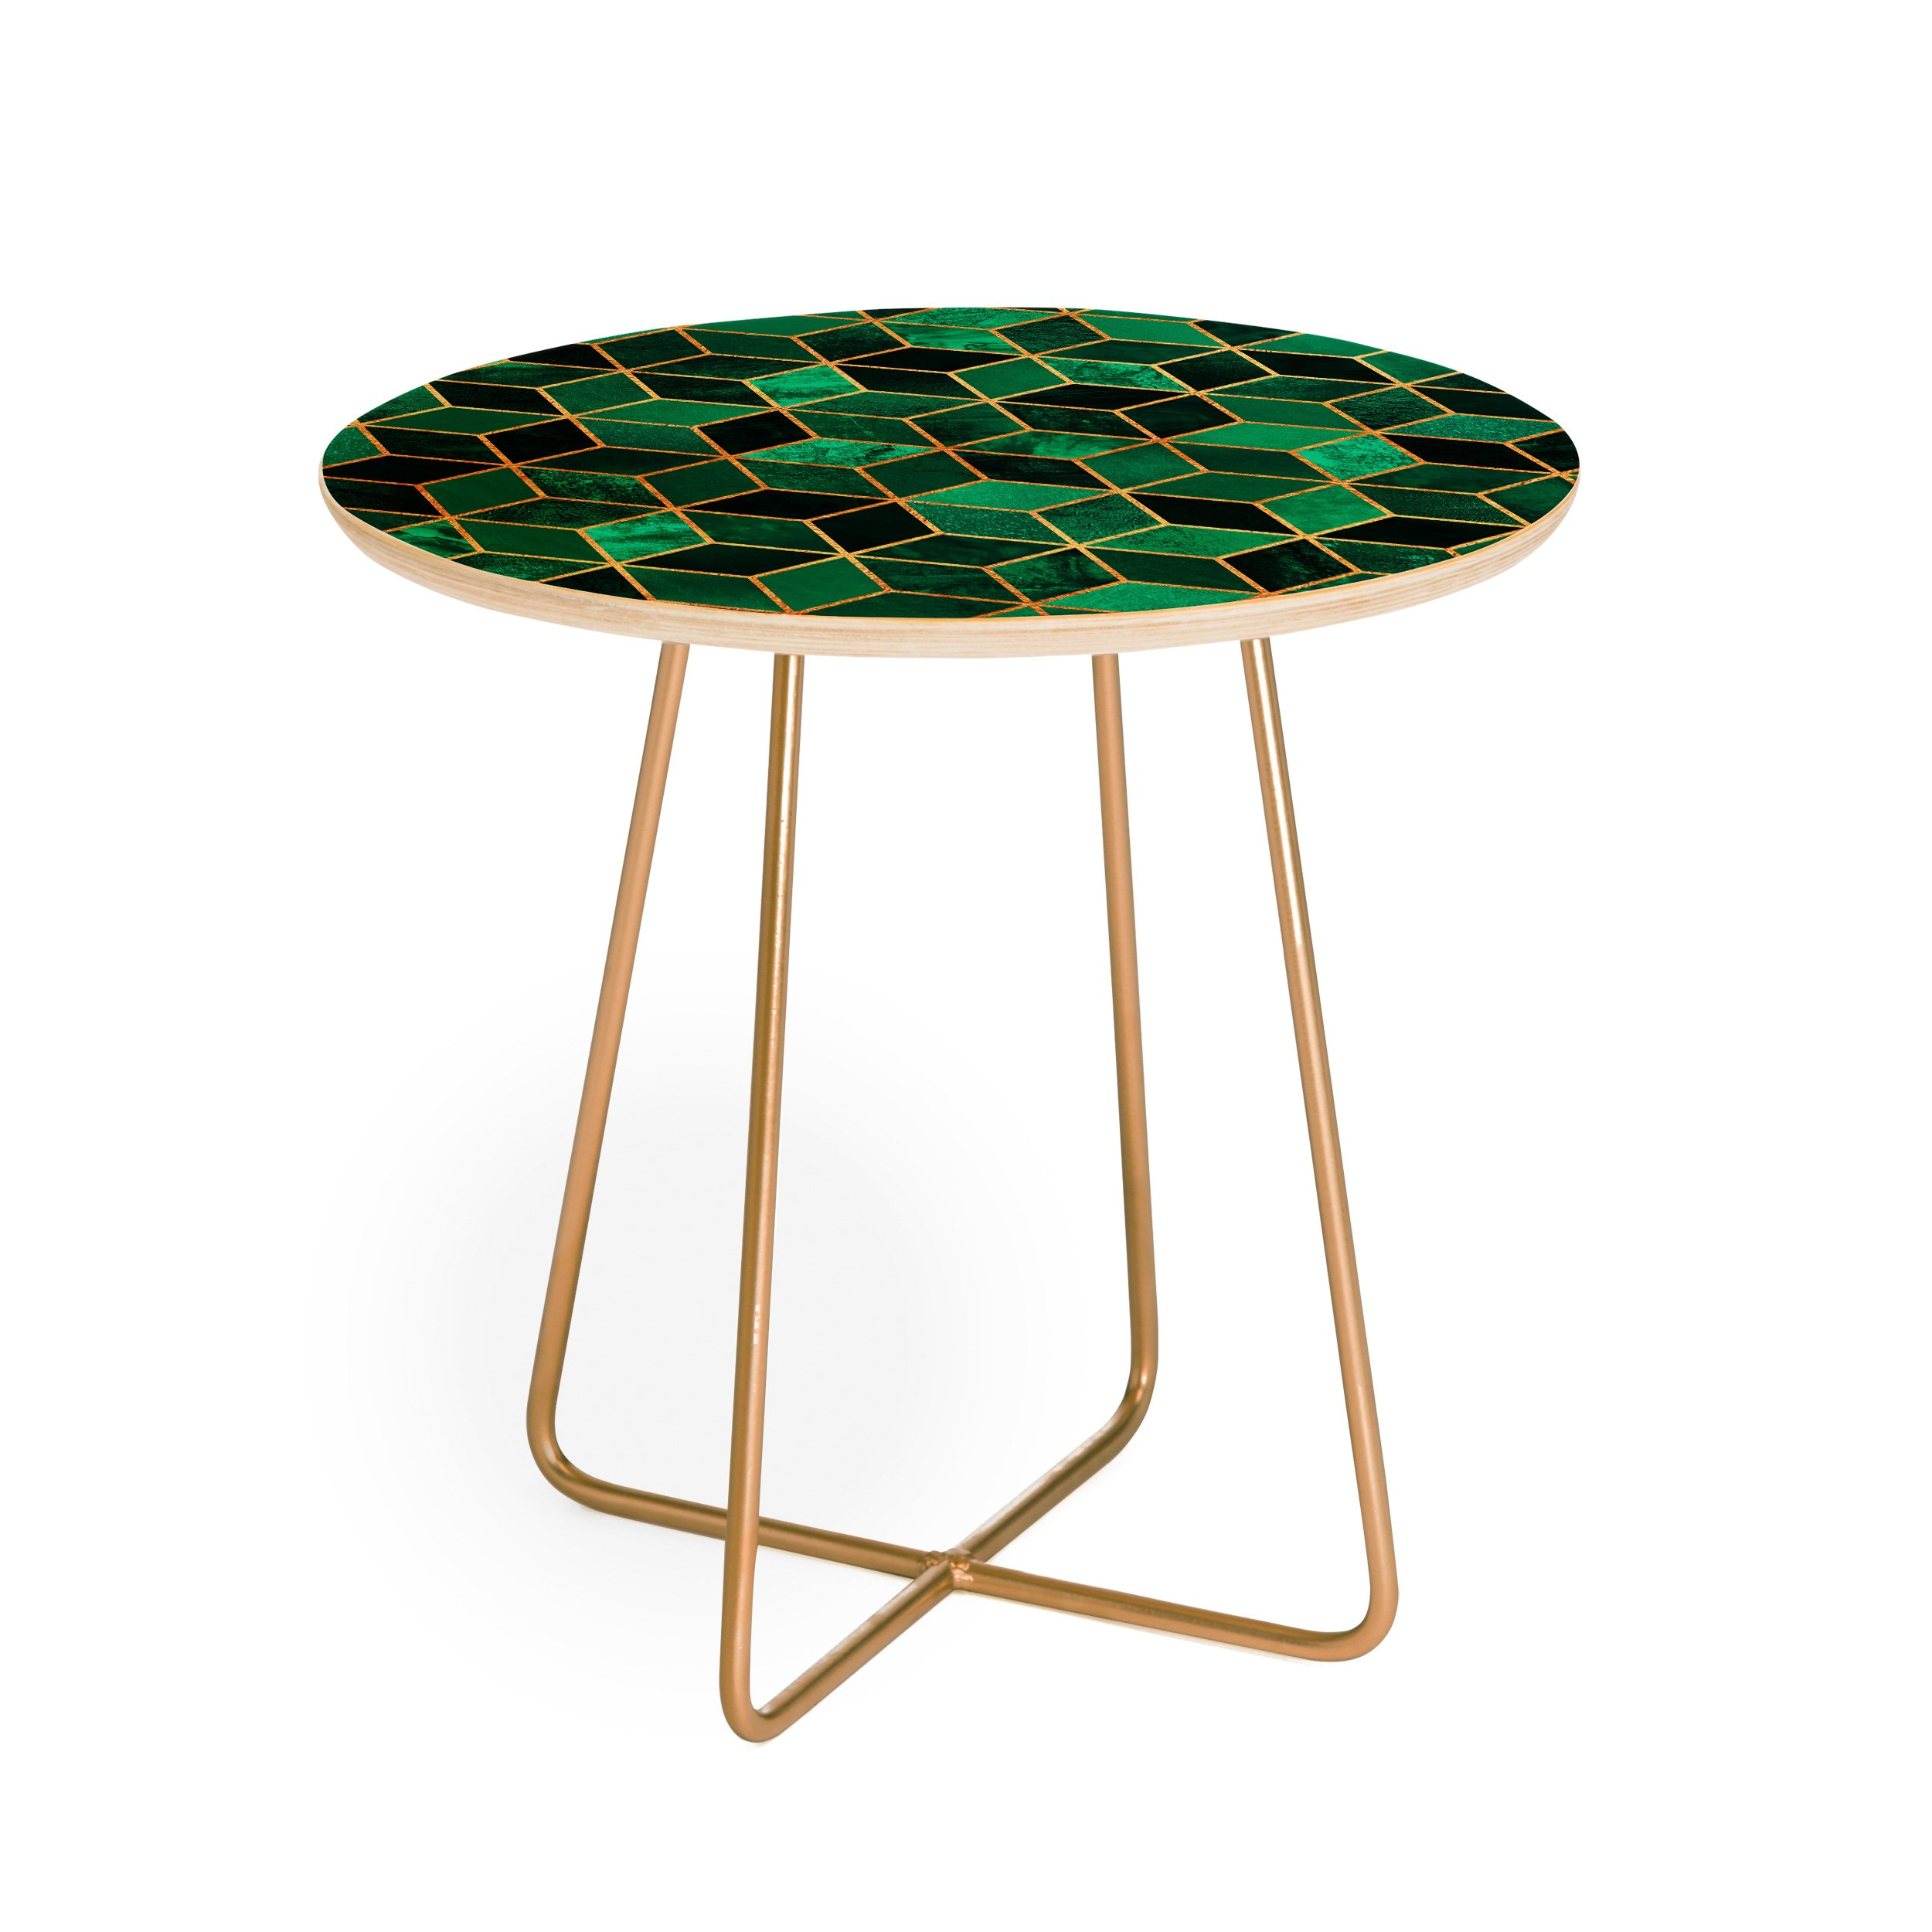 emerald cubes round side table elisabeth fredriksson white background square aston gold green accent west elm hamilton leather sofa loveseat sleeper hot water heater jcpenney